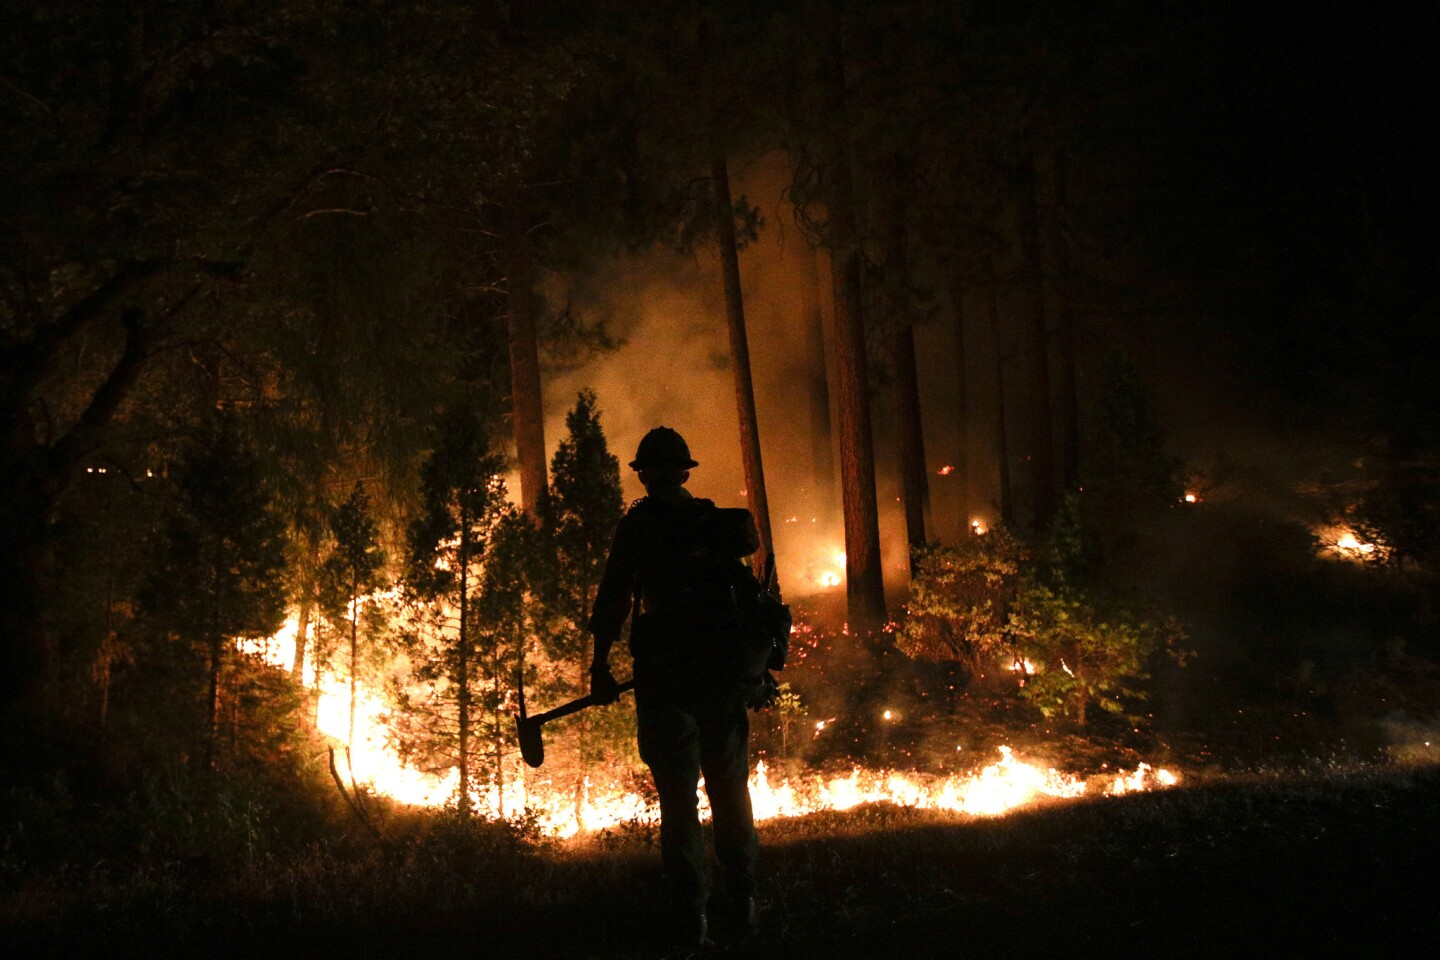 The Rim fire destroyed more than a quarter of a million acres in the Stanislaus National Forest and parts of Yosemite National Park. It was started by a hunter's illegal campfire; authorities have still not made an arrest or revealed the results of their investigation, even though the fire started in August. What gives? Above: A firefighter watches the Rim fire burn near Yosemite National Park in August. MORE YEAR IN REVIEW: Ted Rall's five best cartoons of 2013 Washington's 5 biggest 'fails' of 2013 10 tips for a better life from The Times' Op-Ed pages in 2013